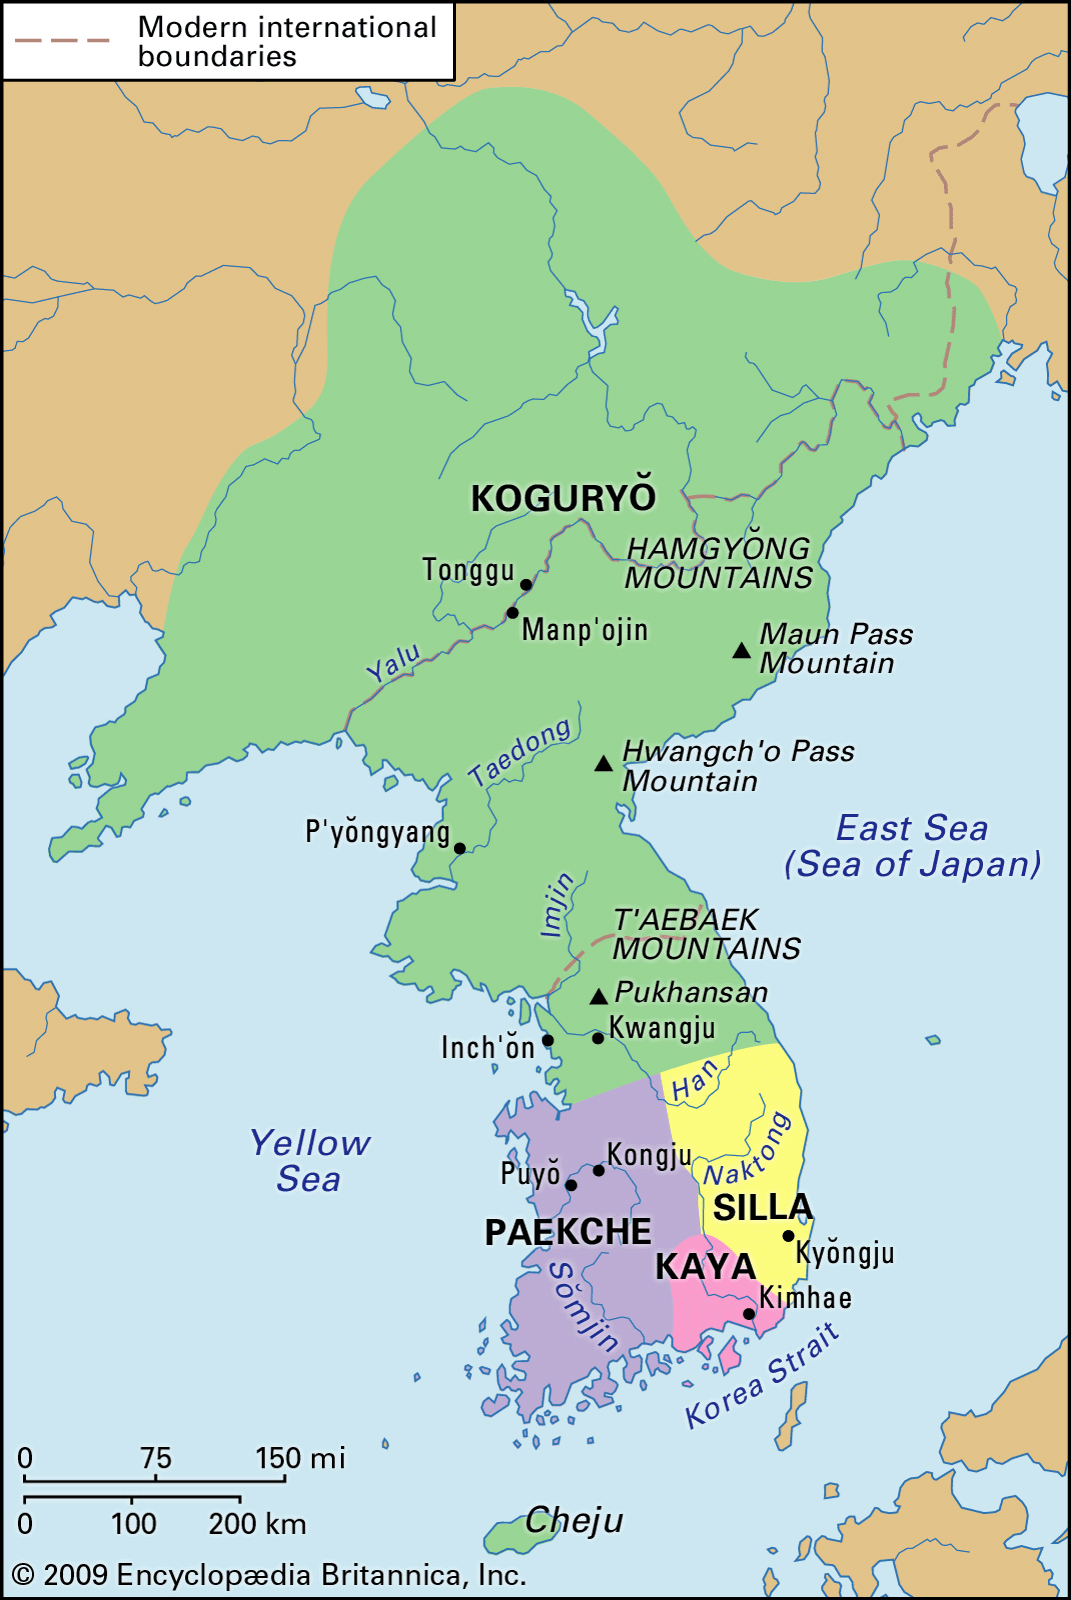 Map of Ancient Korea Korea Map Of Mountains on luxembourg mountains map, malaysia mountains map, cyprus mountains map, taiwan mountains map, hungary mountains map, north caucasus mountains map, sudan mountains map, tunisia mountains map, u.s. mountains map, sierra leone mountains map, finland mountains map, dominica mountains map, belize mountains map, bhutan mountains map, western us mountains map, aleutian islands mountains map, barbados mountains map, bangladesh mountains map, euphrates mountains map, liberia mountains map,